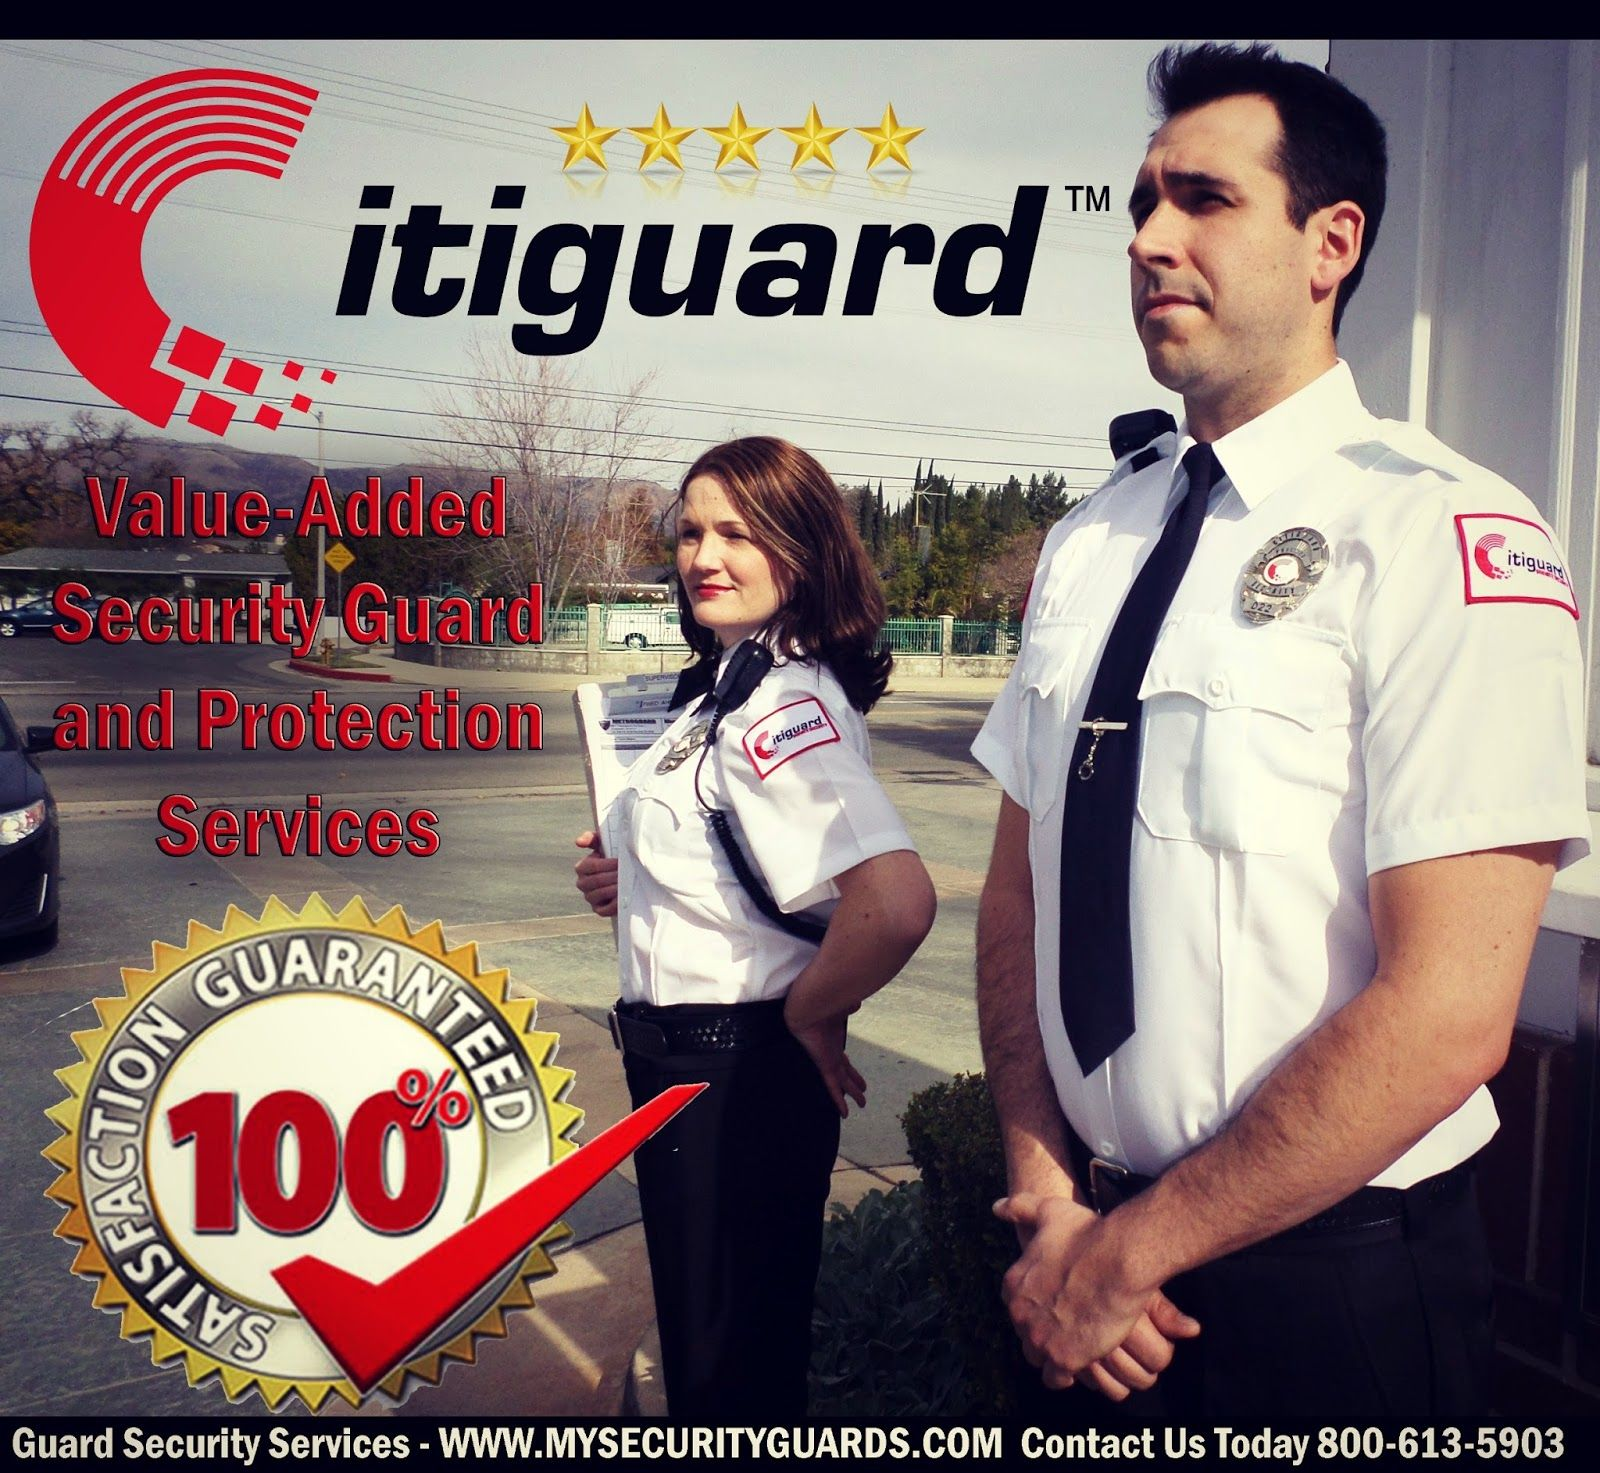 Los Angeles Security Guards Citiguard Armed Security Guard Company Requirements Security Guard Security Guard Services Armed Security Guard